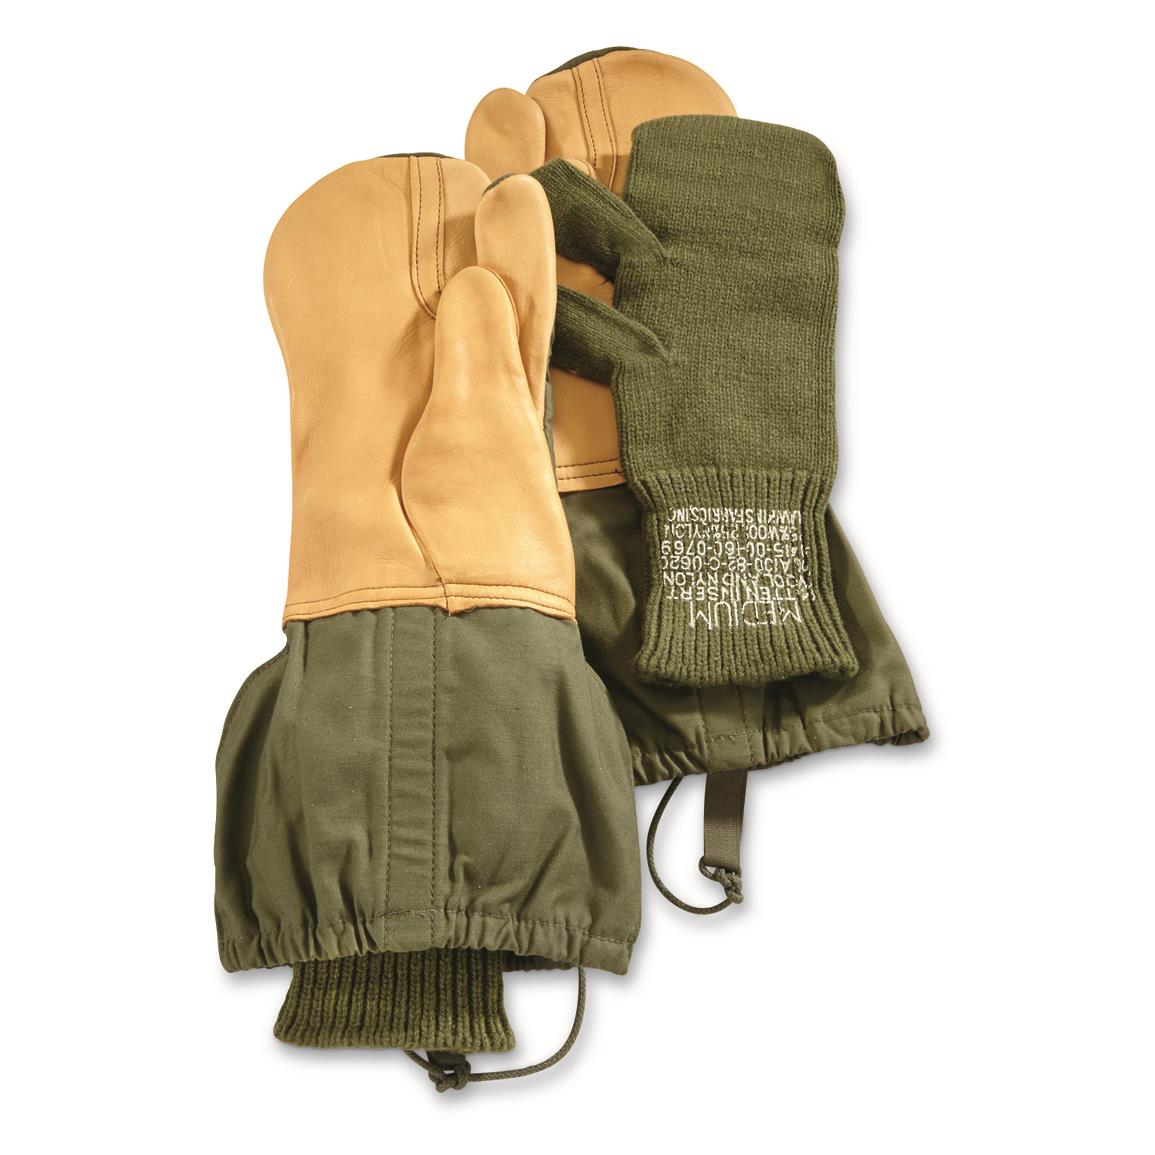 U.S. Military Surplus M65 Trigger Finger Mitts with Liners, New